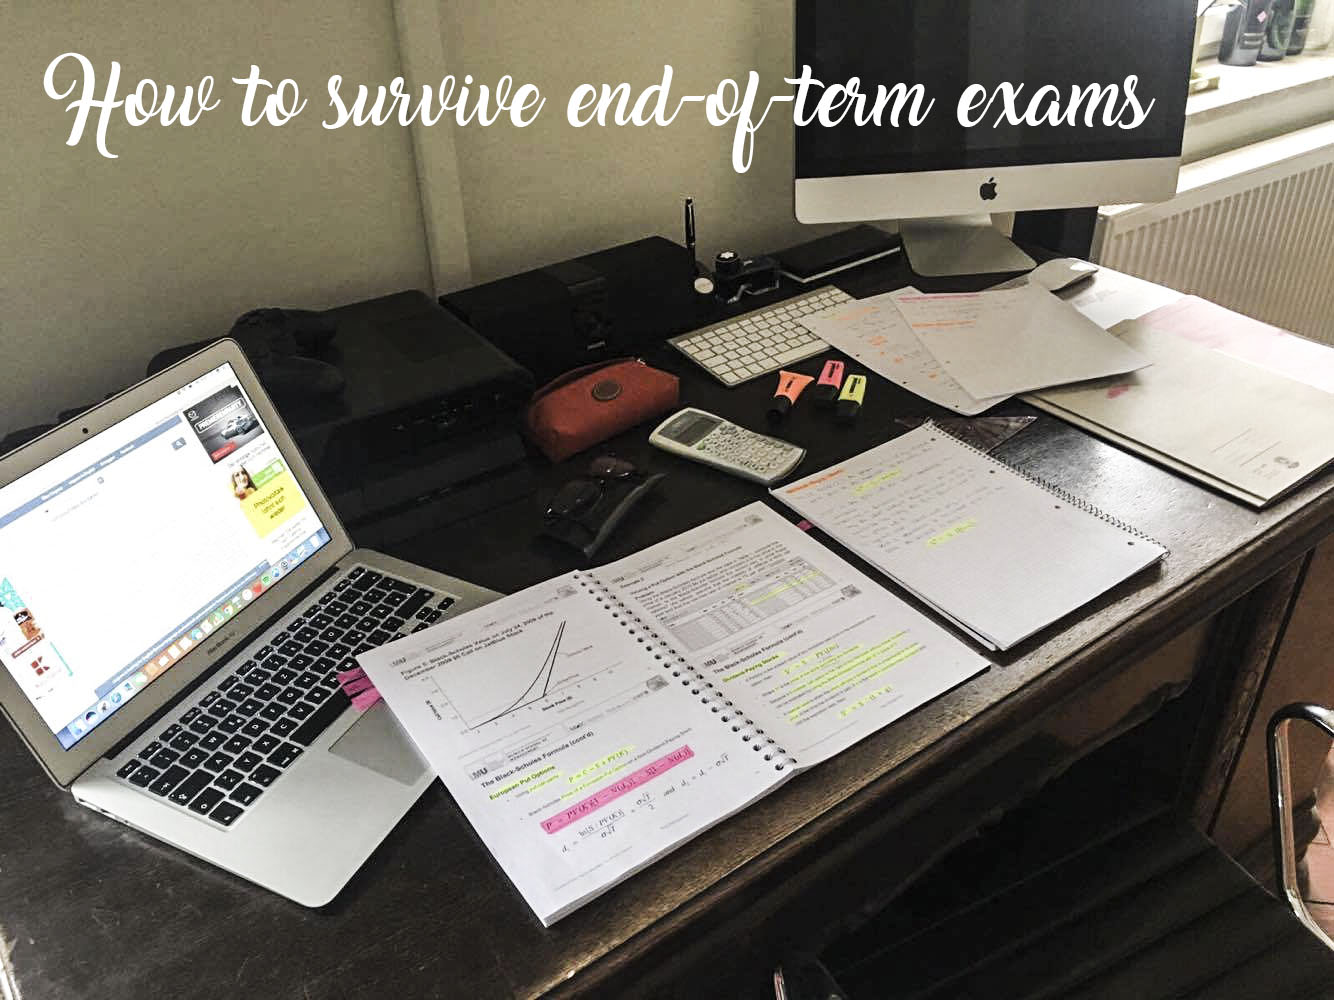 How to survive end-of-term exams